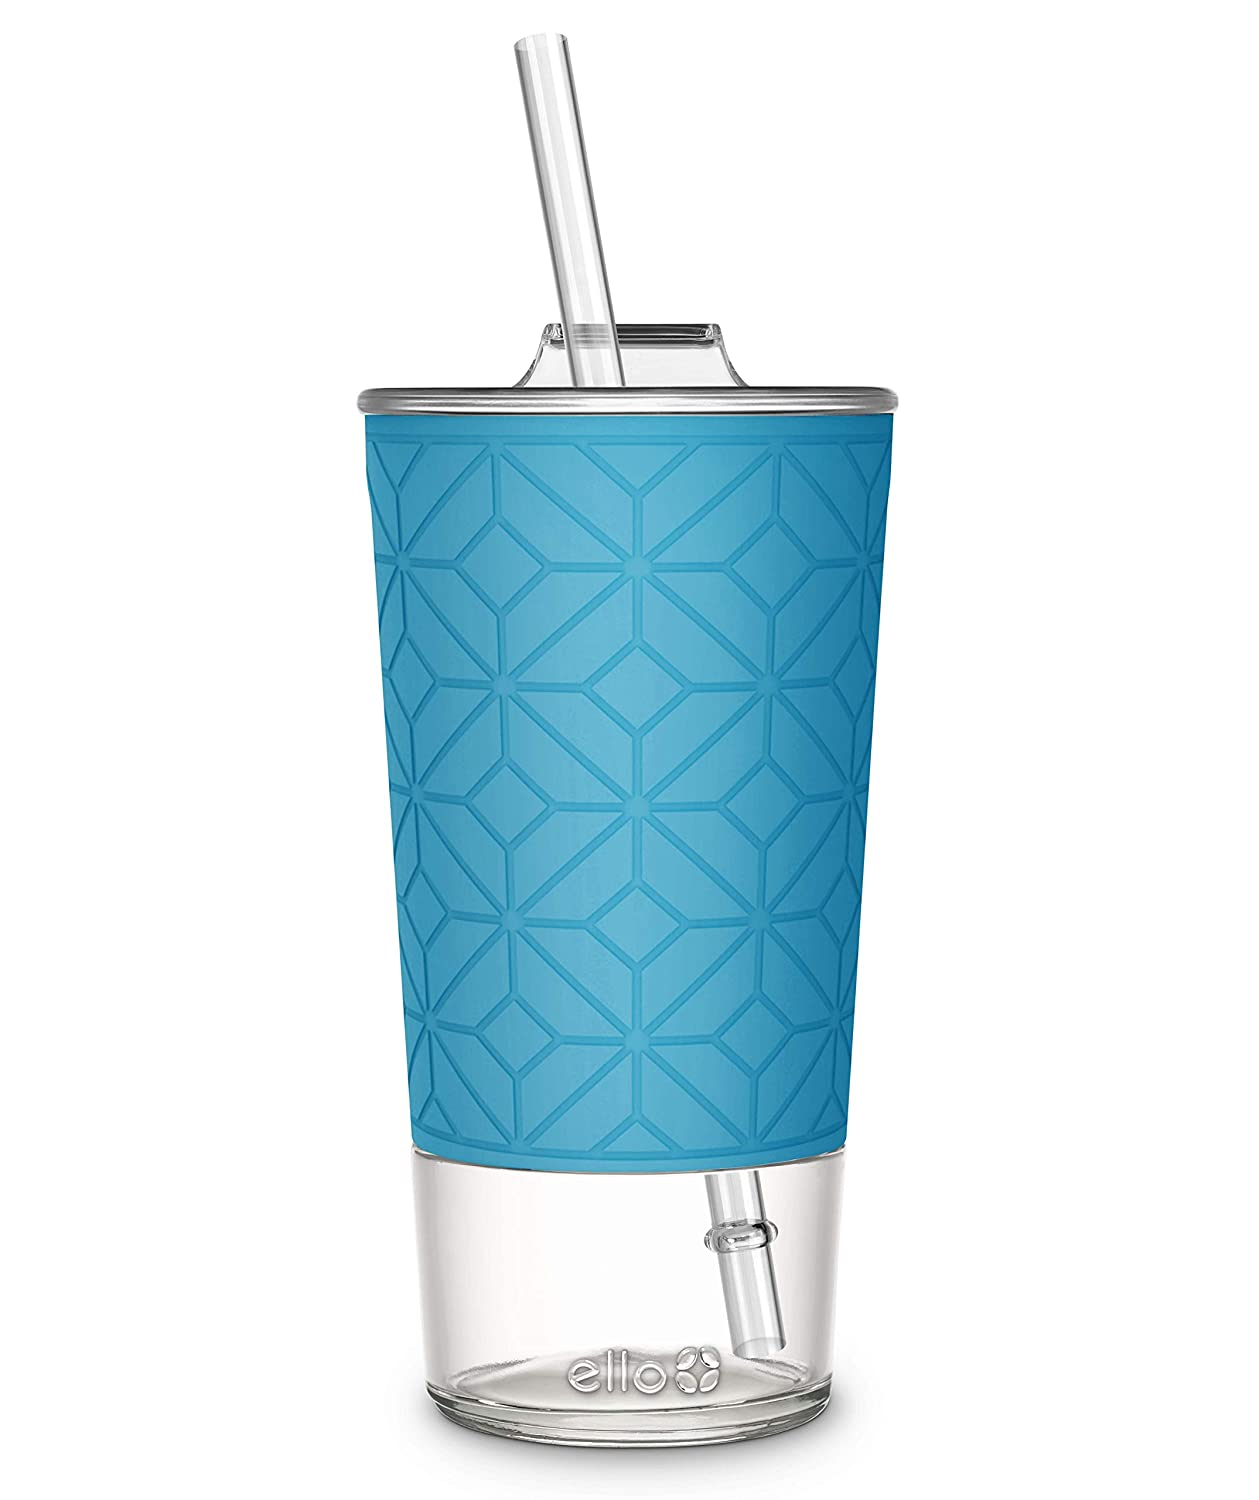 Ello Tidal 20oz Glass Tumbler with Straw